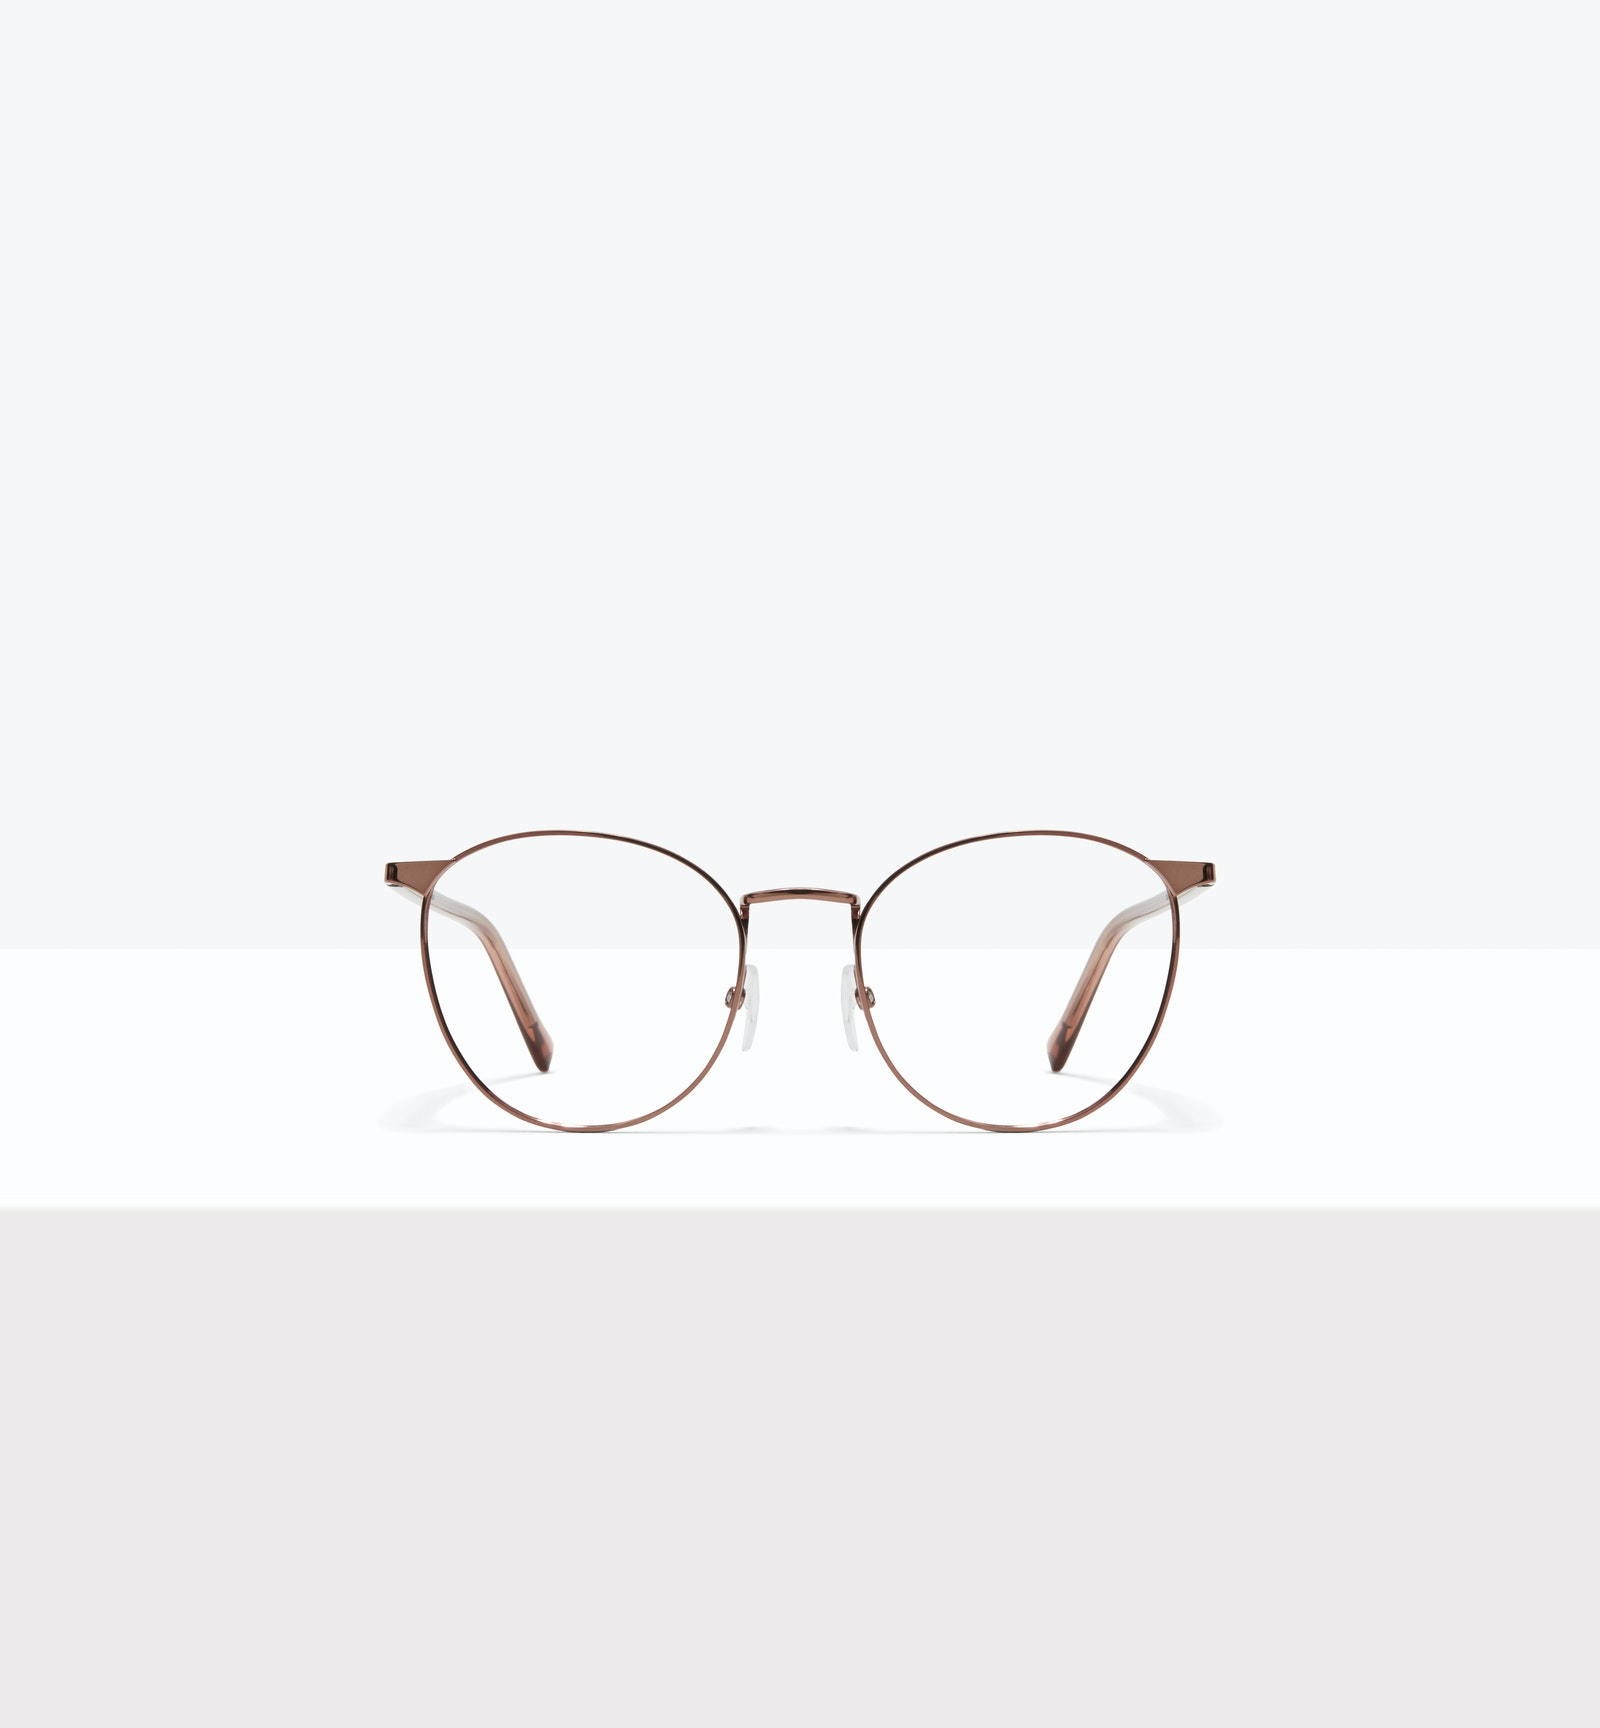 Affordable Fashion Glasses Round Eyeglasses Women Romy S Crepuscule